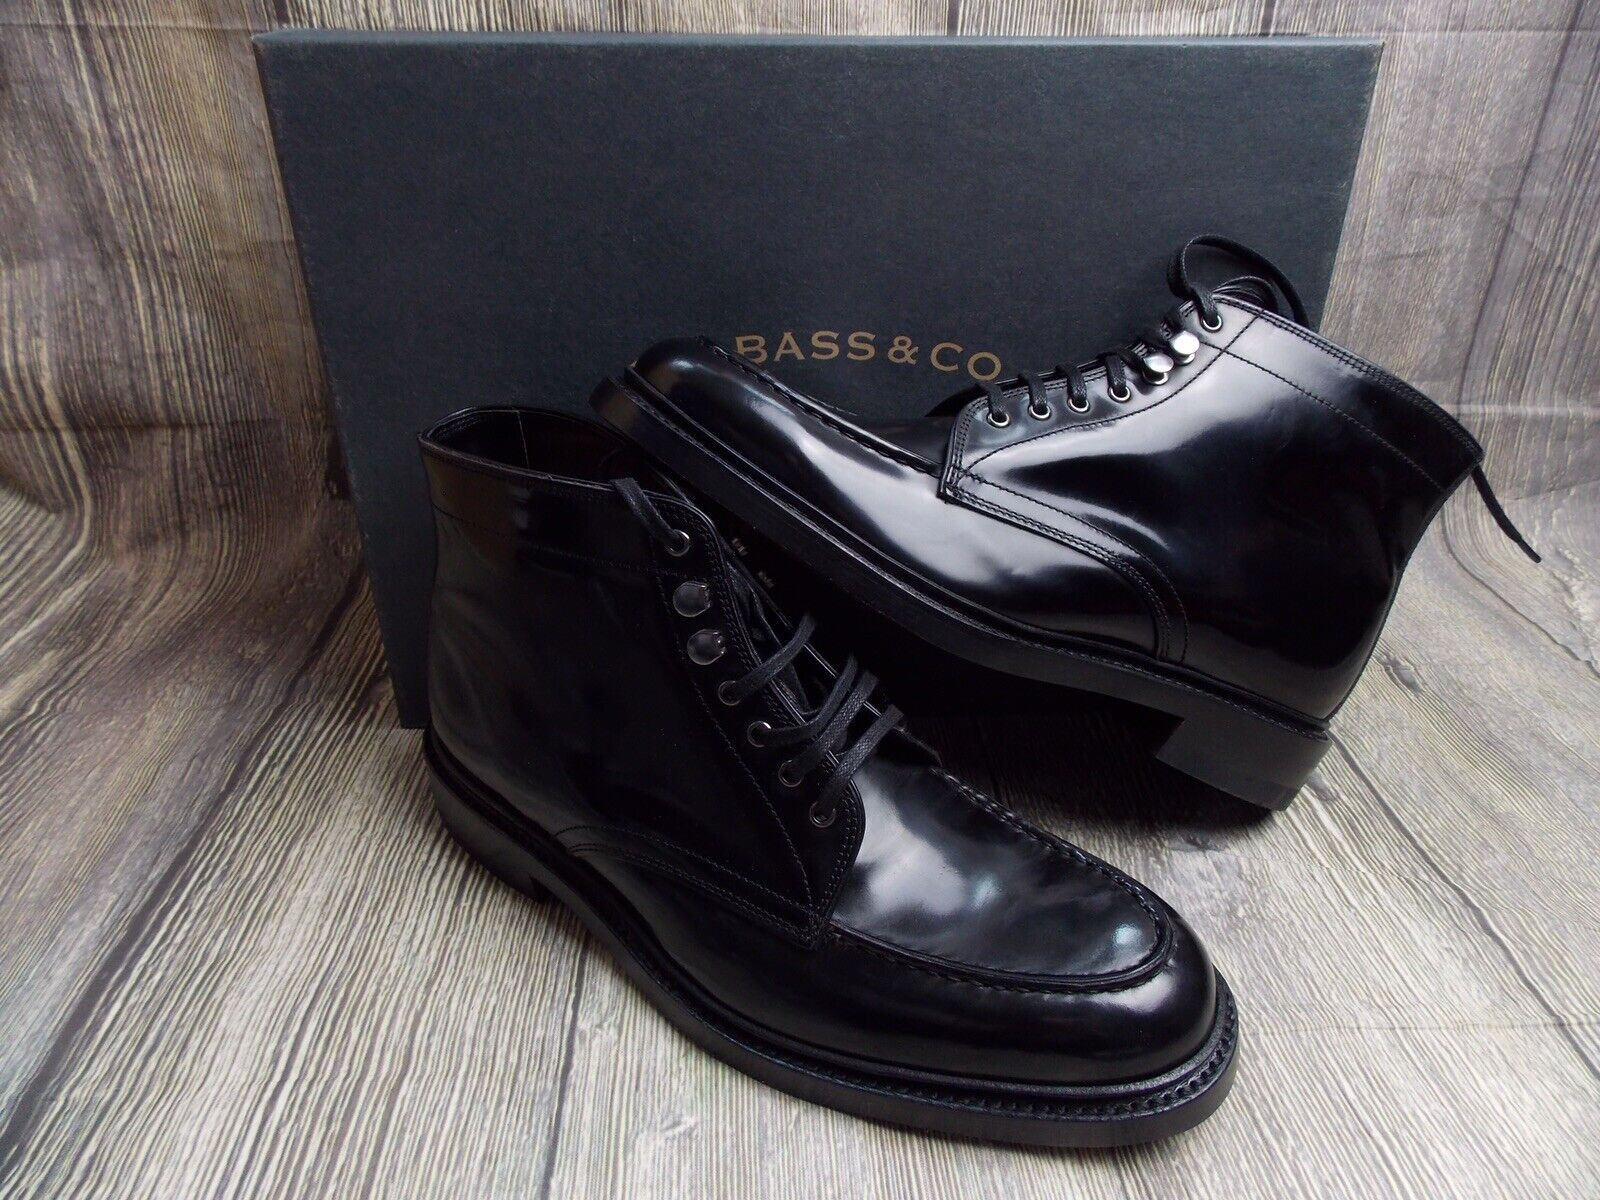 GH BASS APRON MONOGRAM MENS BOOTS BNIB 7UK 41EU  BLACK HIGH SHINE  WEEJUNS